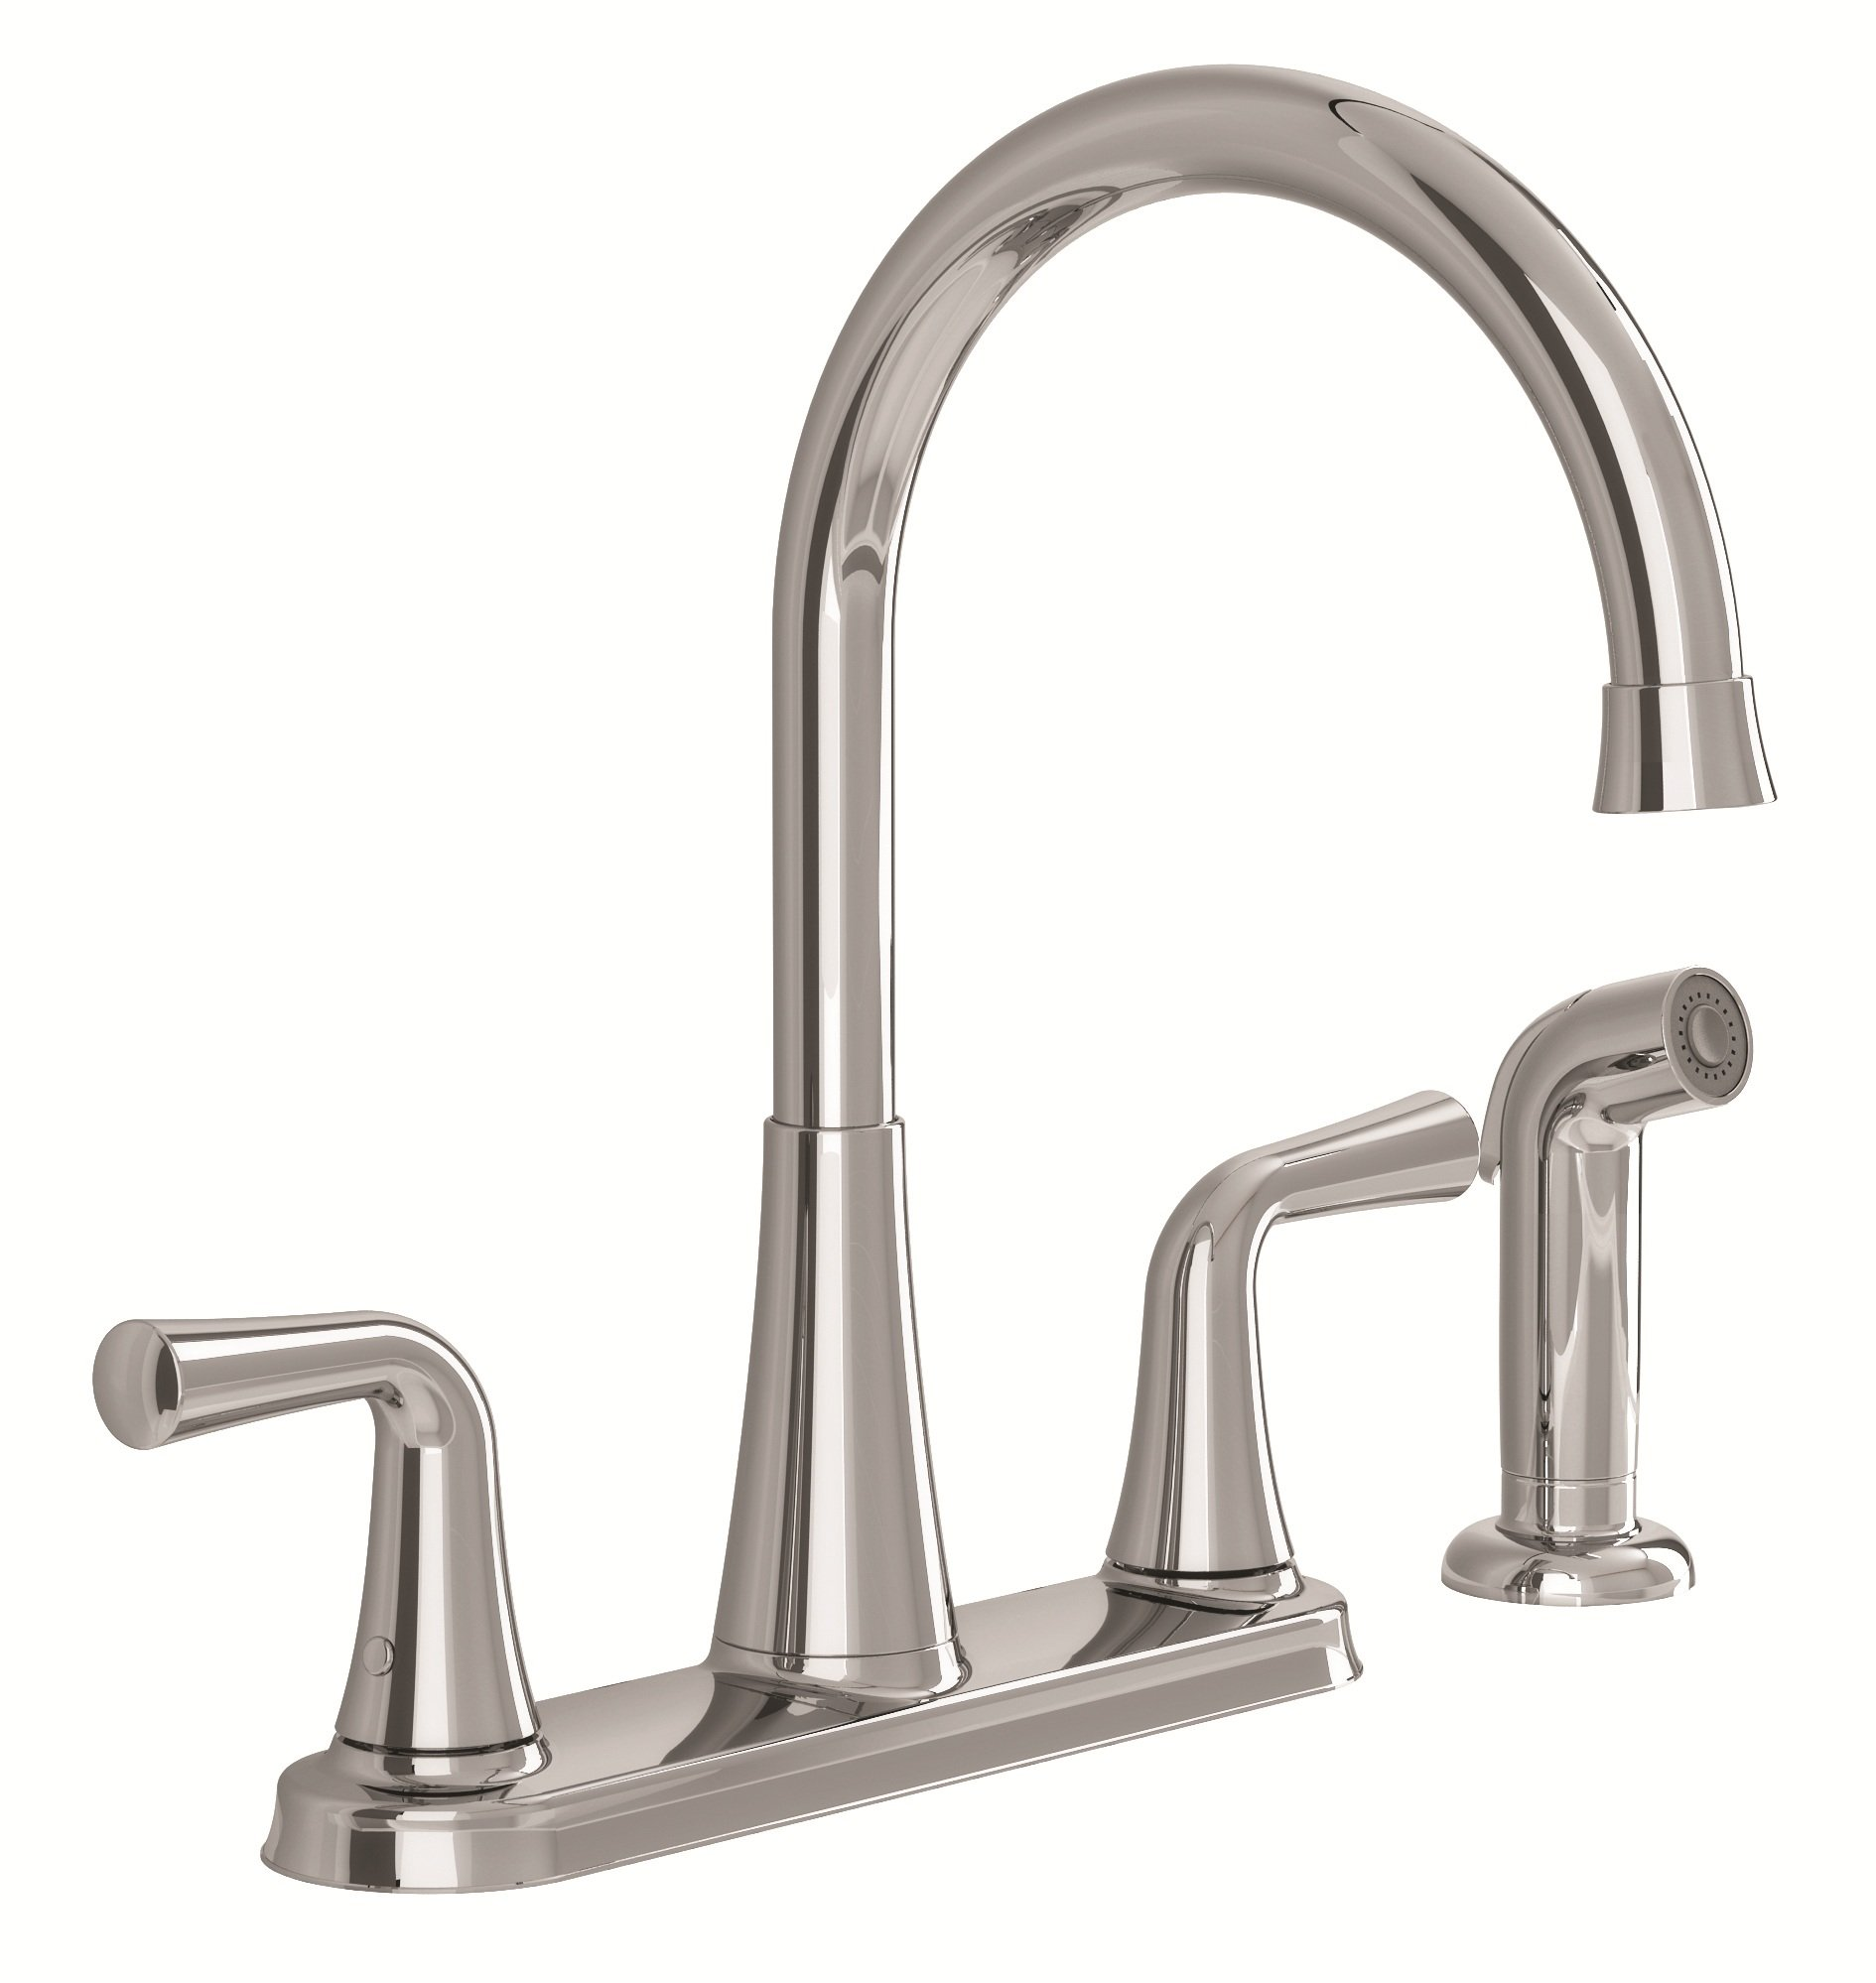 wonderful American Standard Kitchen Faucet Leaking #8: Stock photo of the Angeline kitchen faucet and side spray